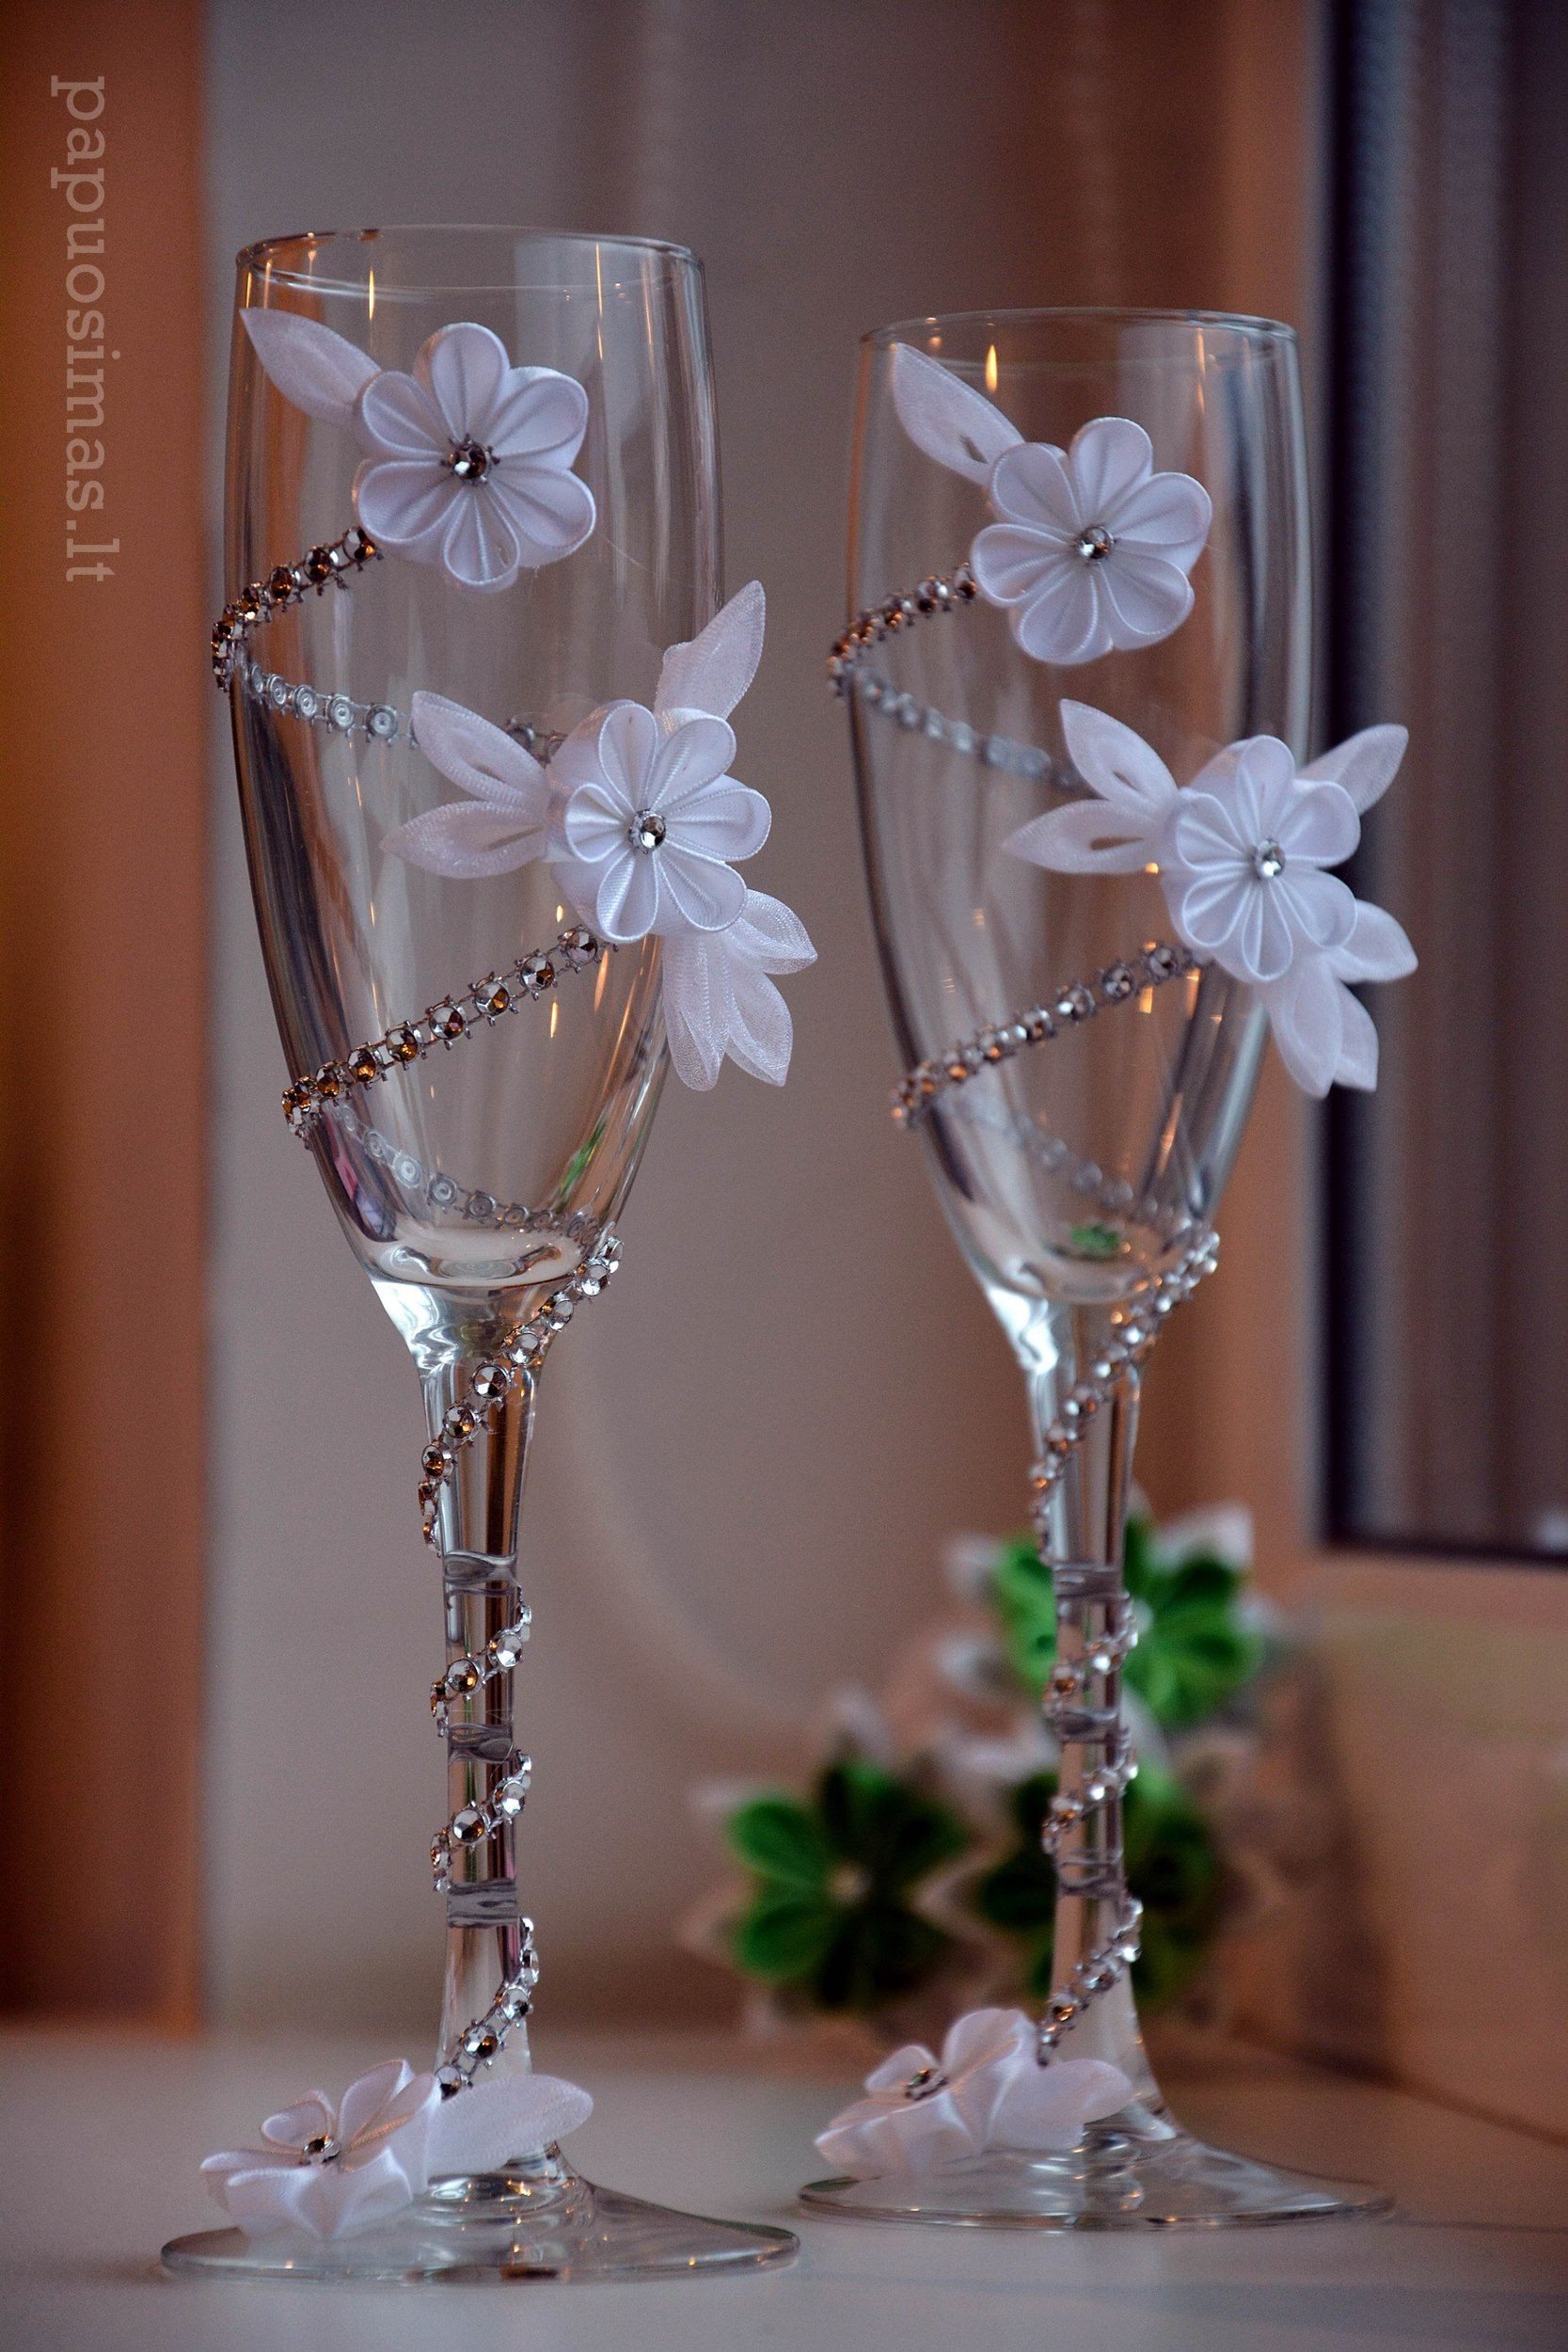 champagne flutes with vase holder of zdobena skleniaek wedding floral ideas pinterest wedding pertaining to zdobena skleniaek wedding crafts wedding decorations wedding centerpieces wedding favors wine glass